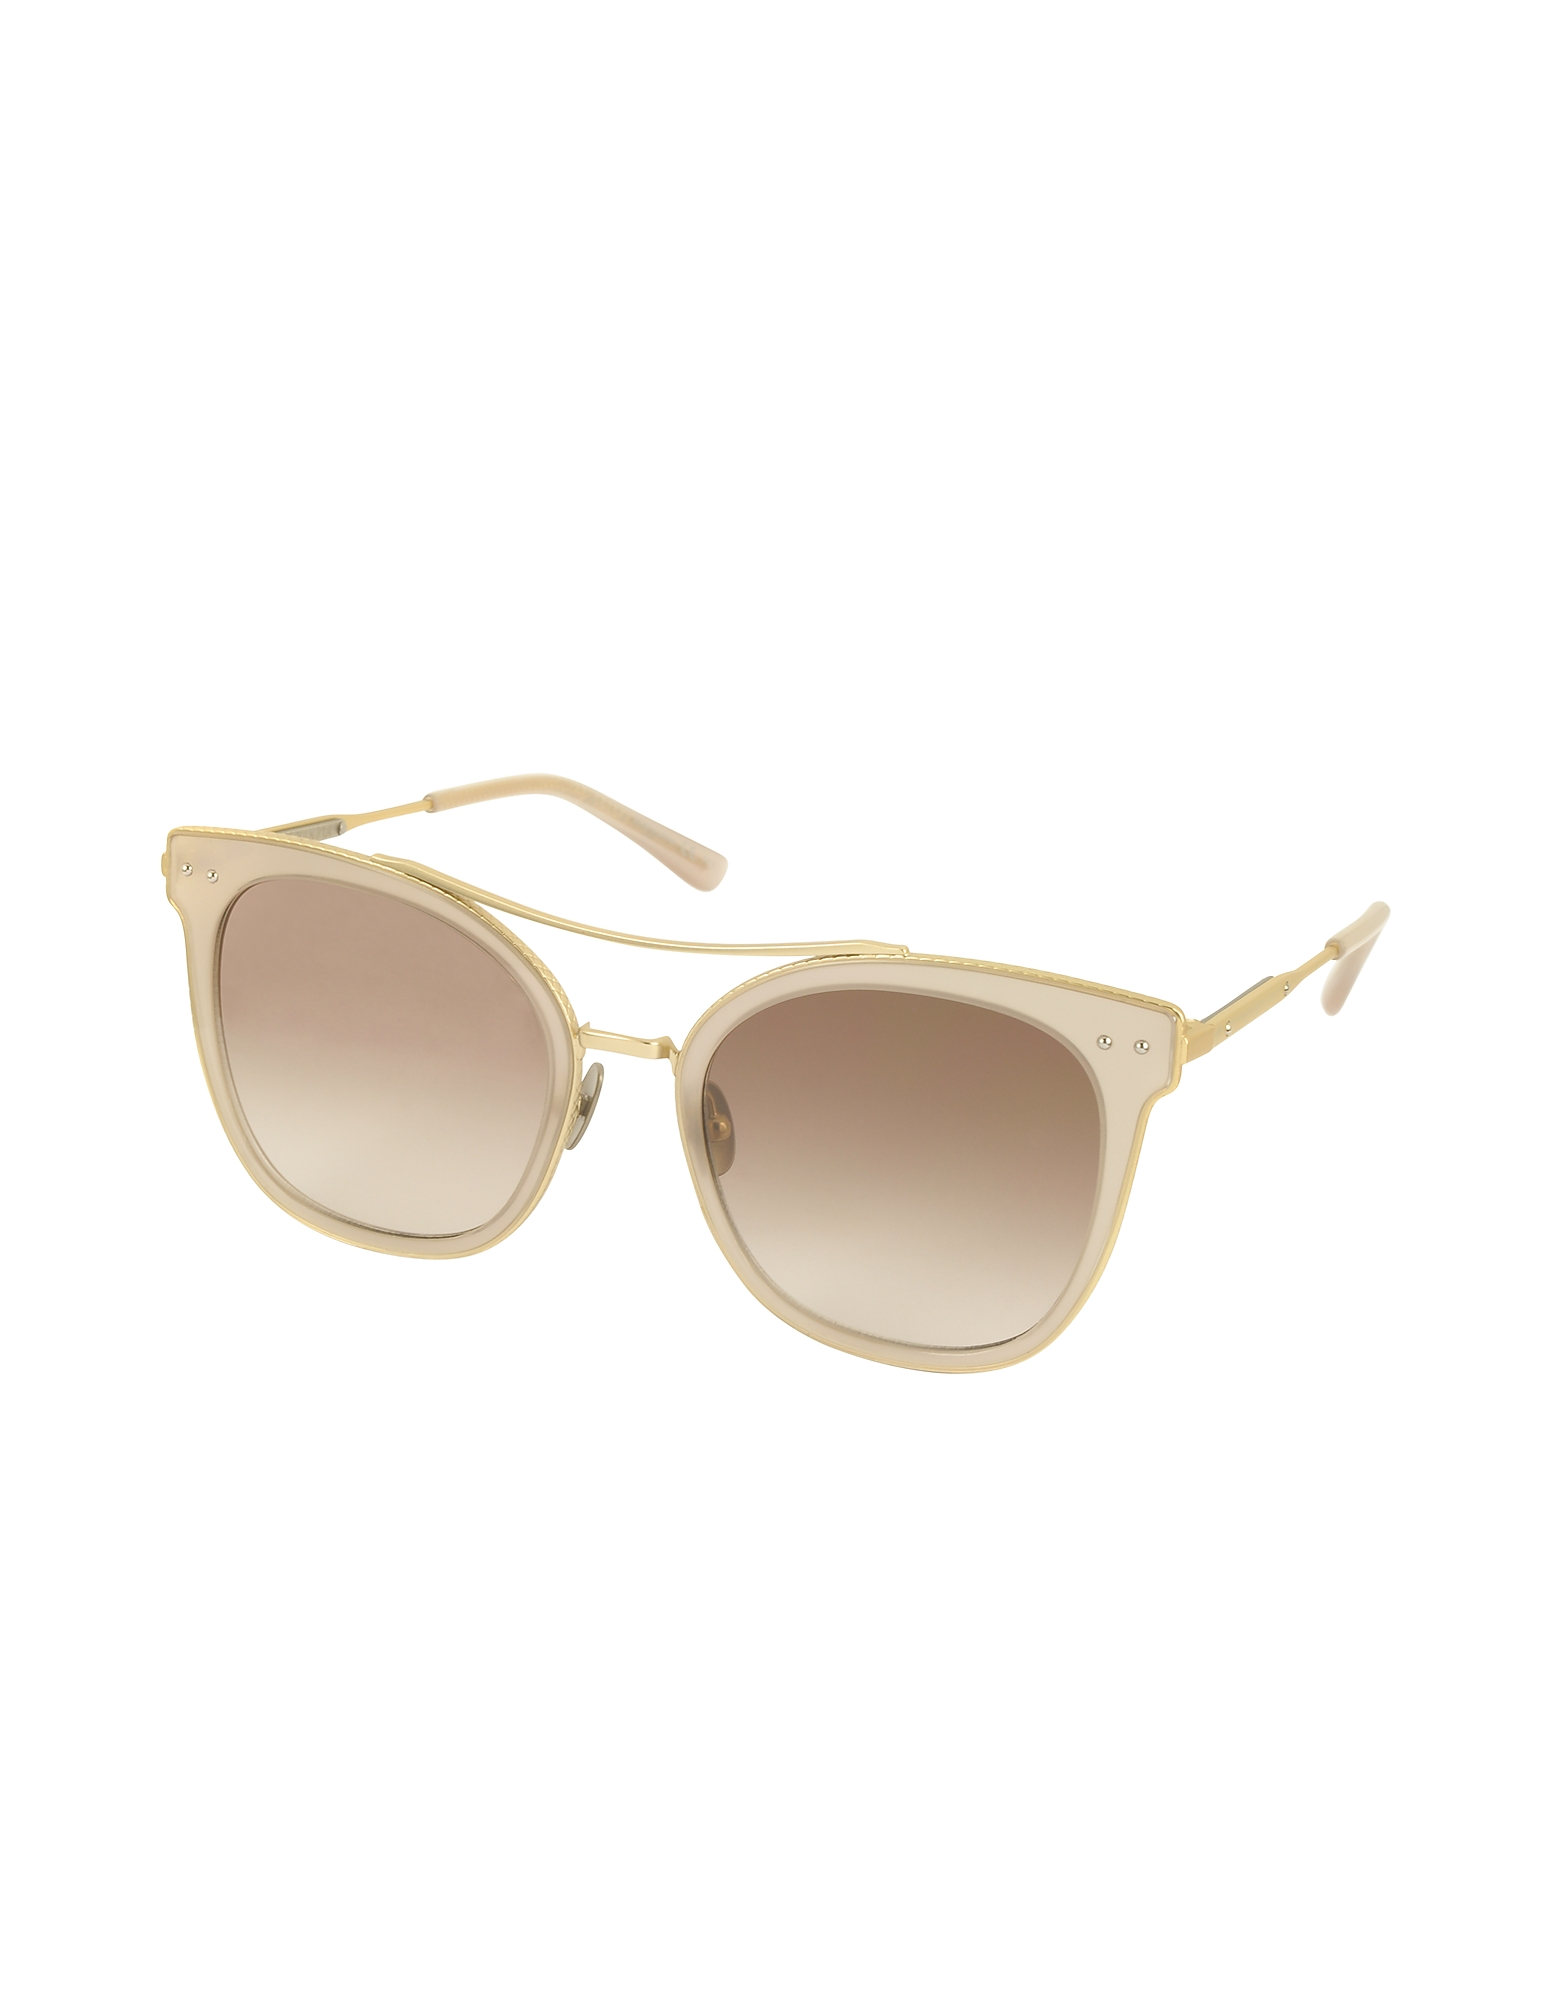 BV0064S Round Metal Frame Women's Sunglasses от Forzieri.com INT